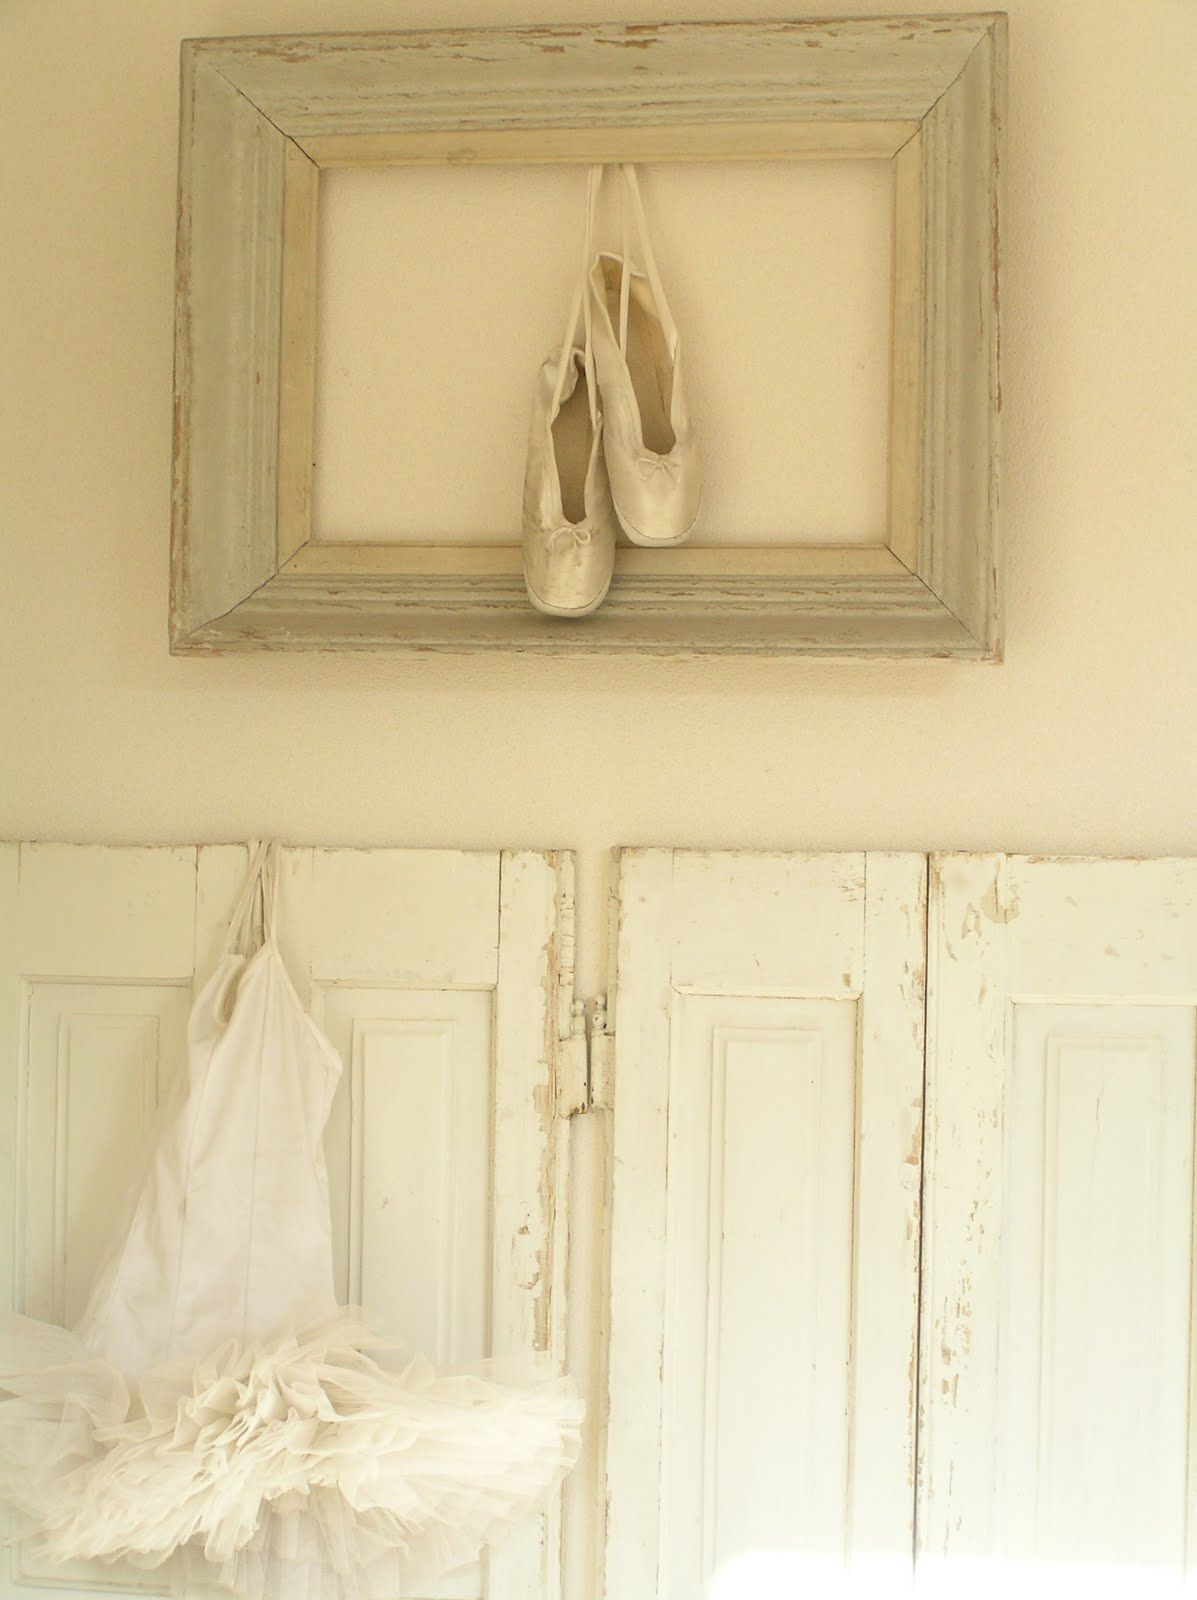 pointe shoes in a frame. hanging/framing objects instead of pictures ...